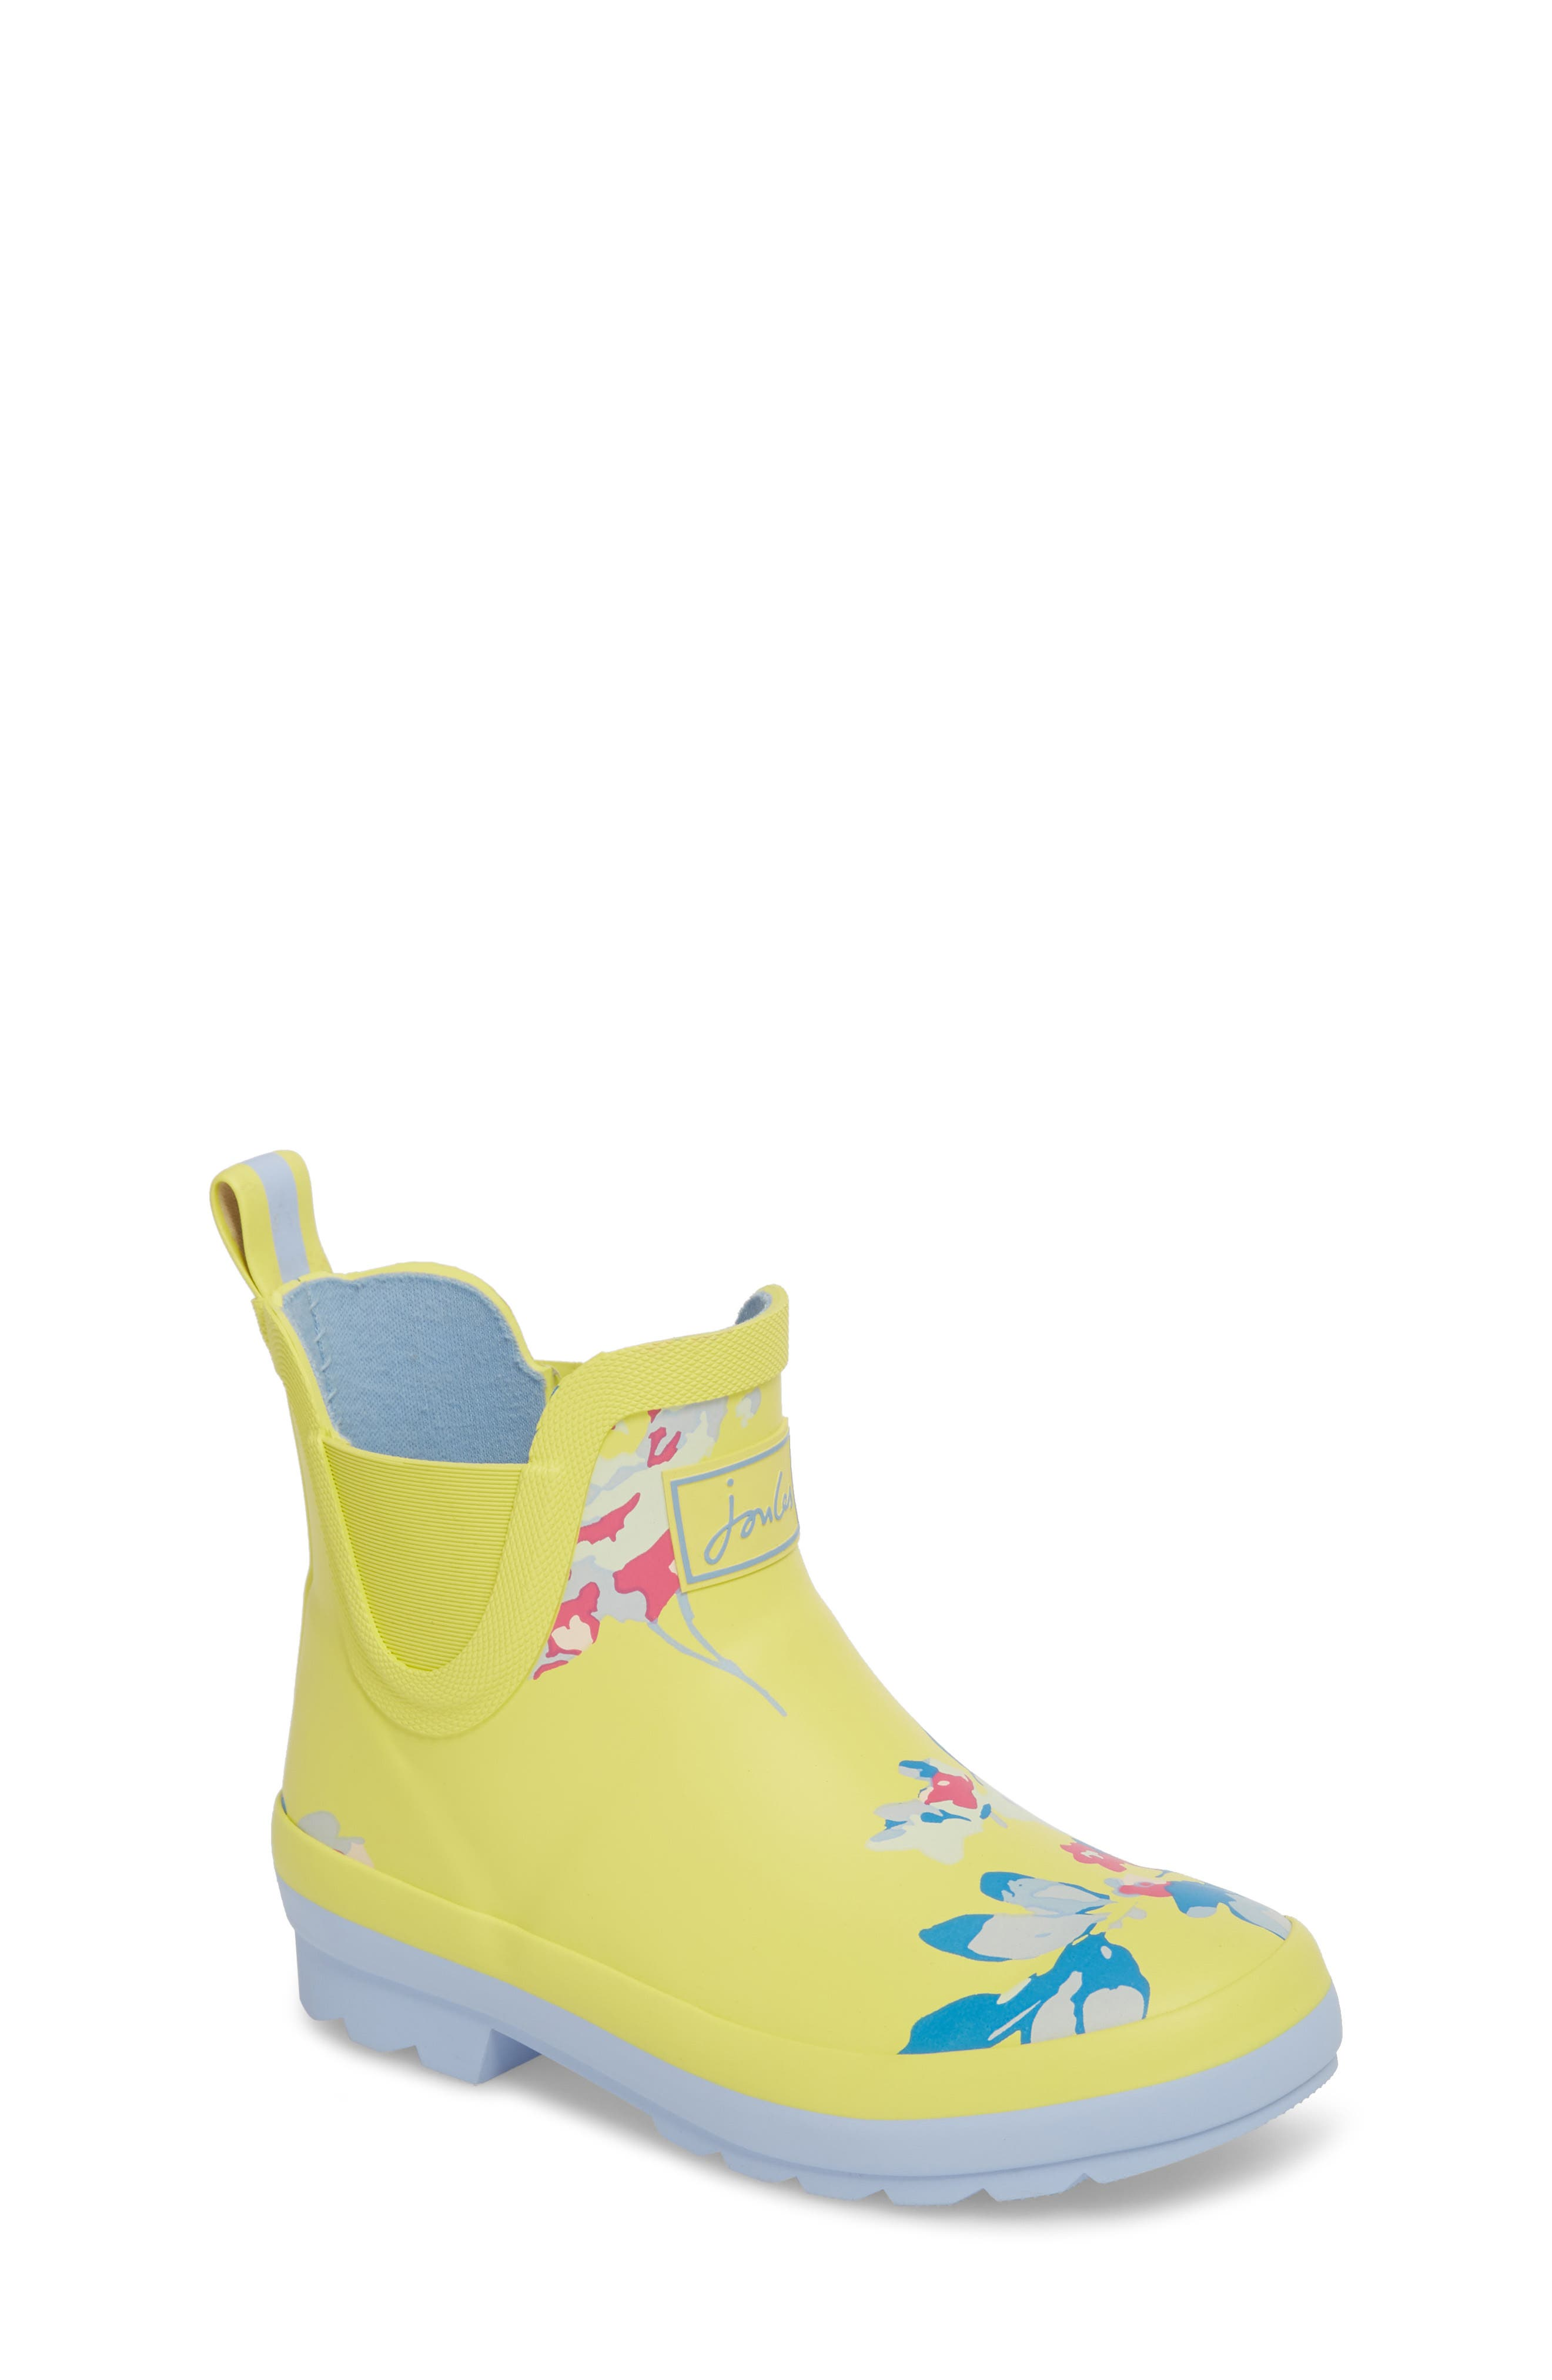 Joules Print Rain Boot (Toddler, Little Kid & Big Kid)